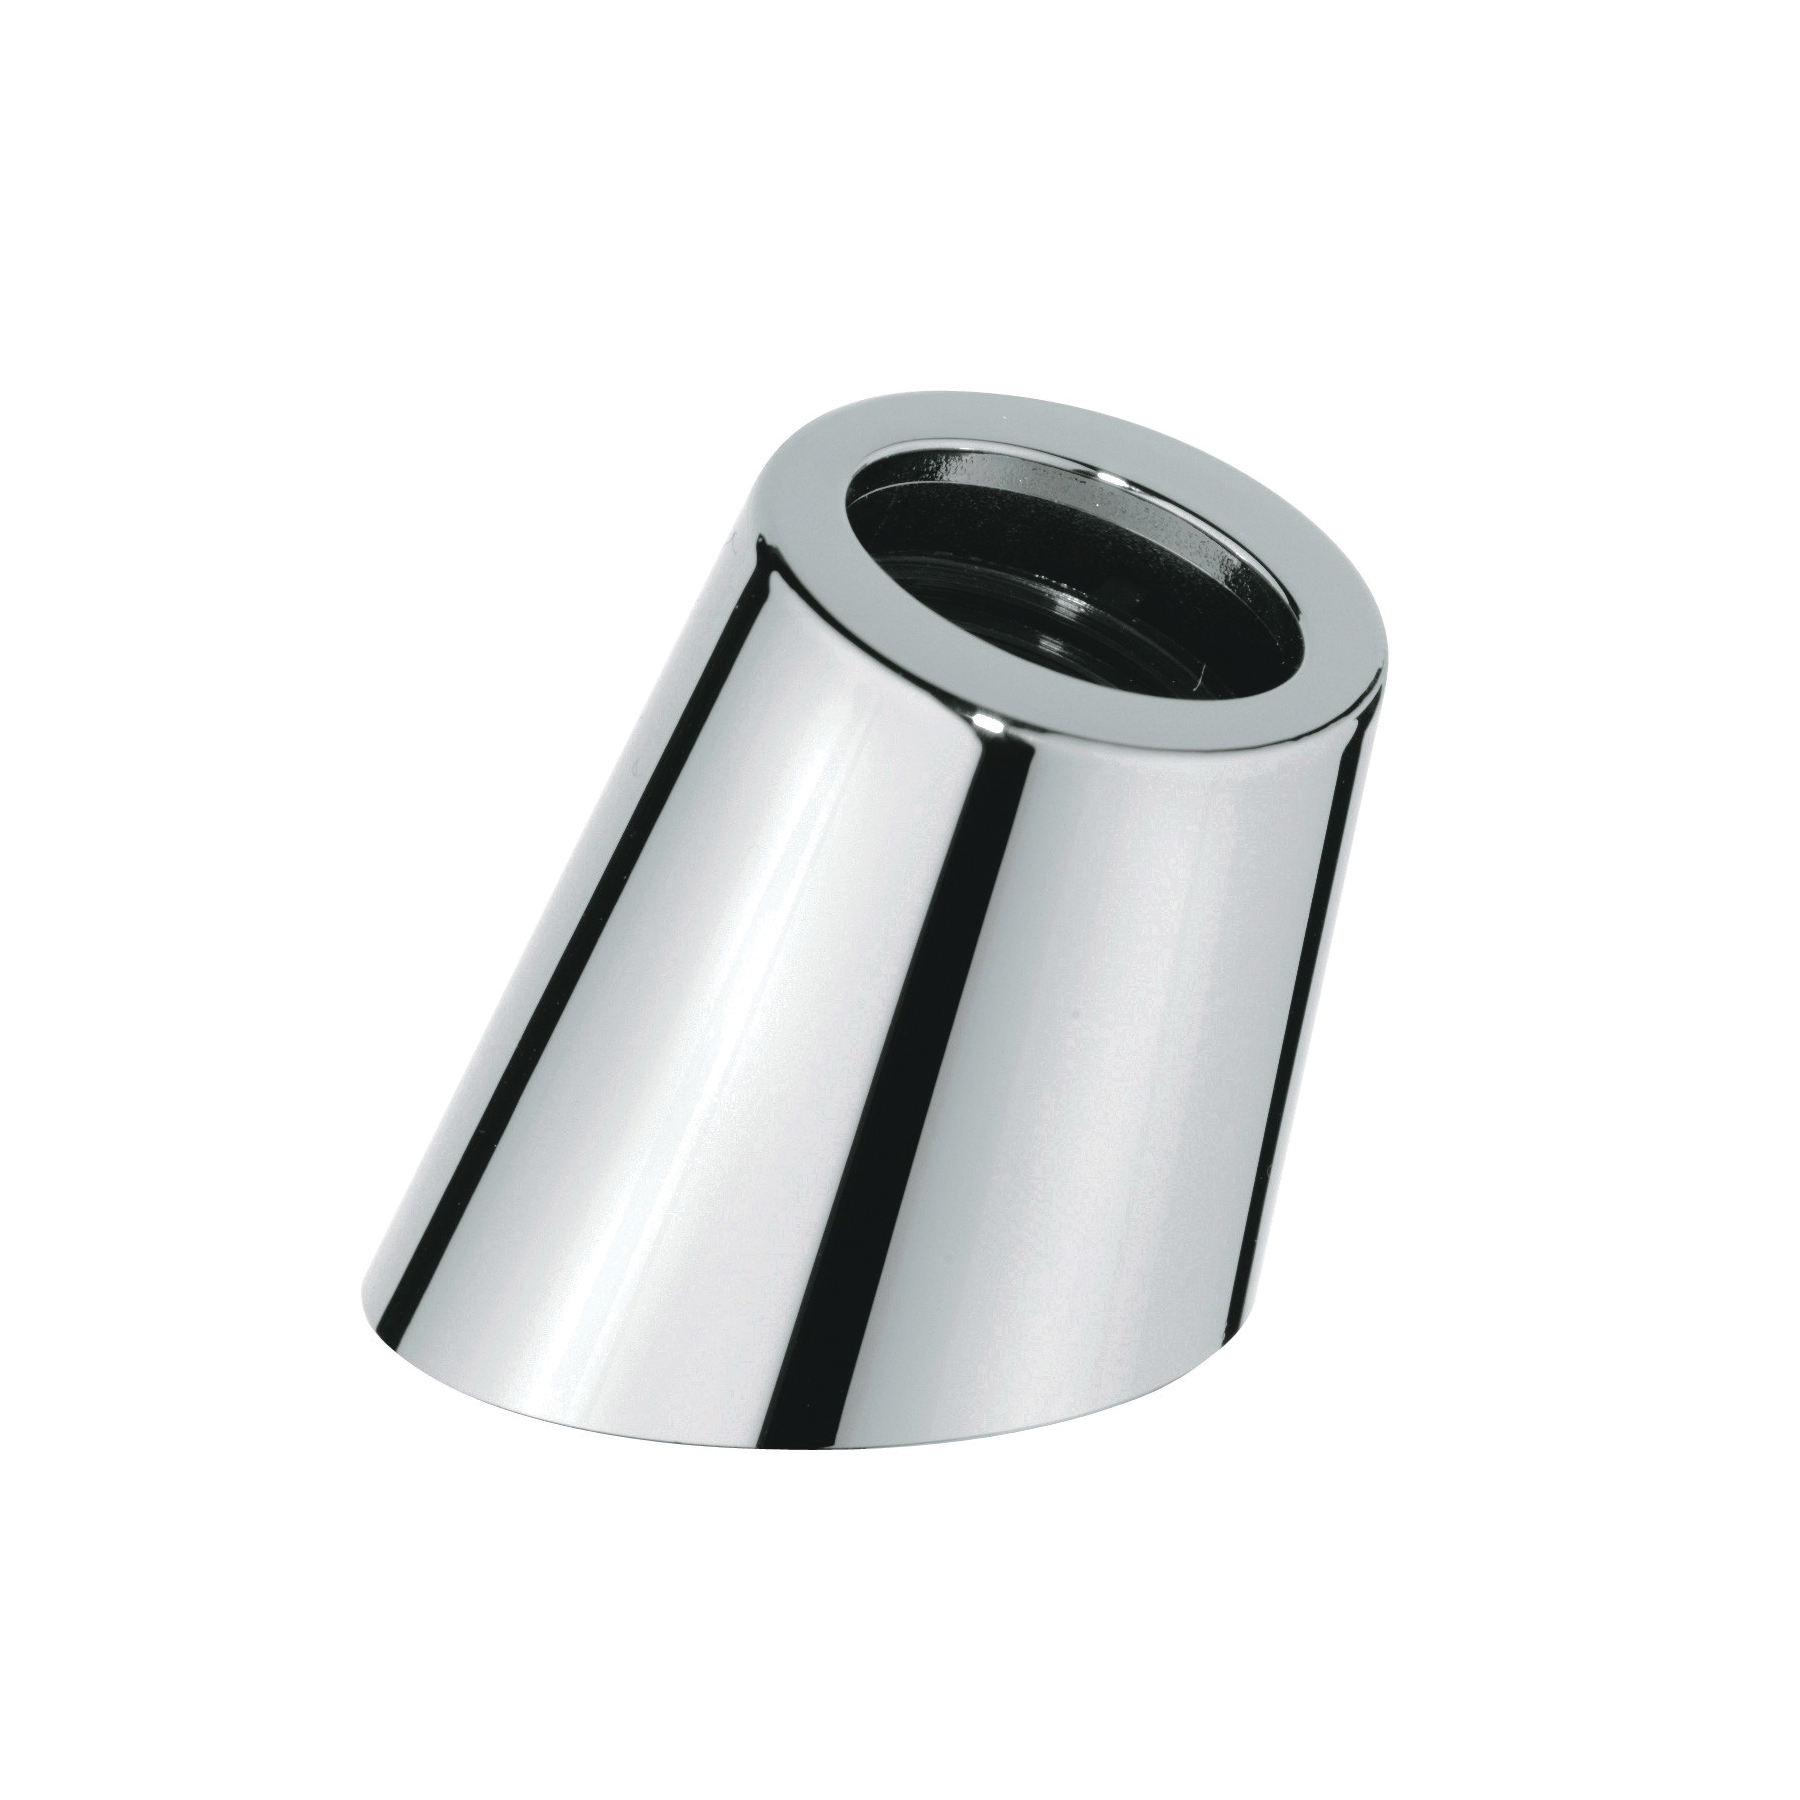 GROHE 46486000 Coupling Piece, StarLight® Chrome, Import